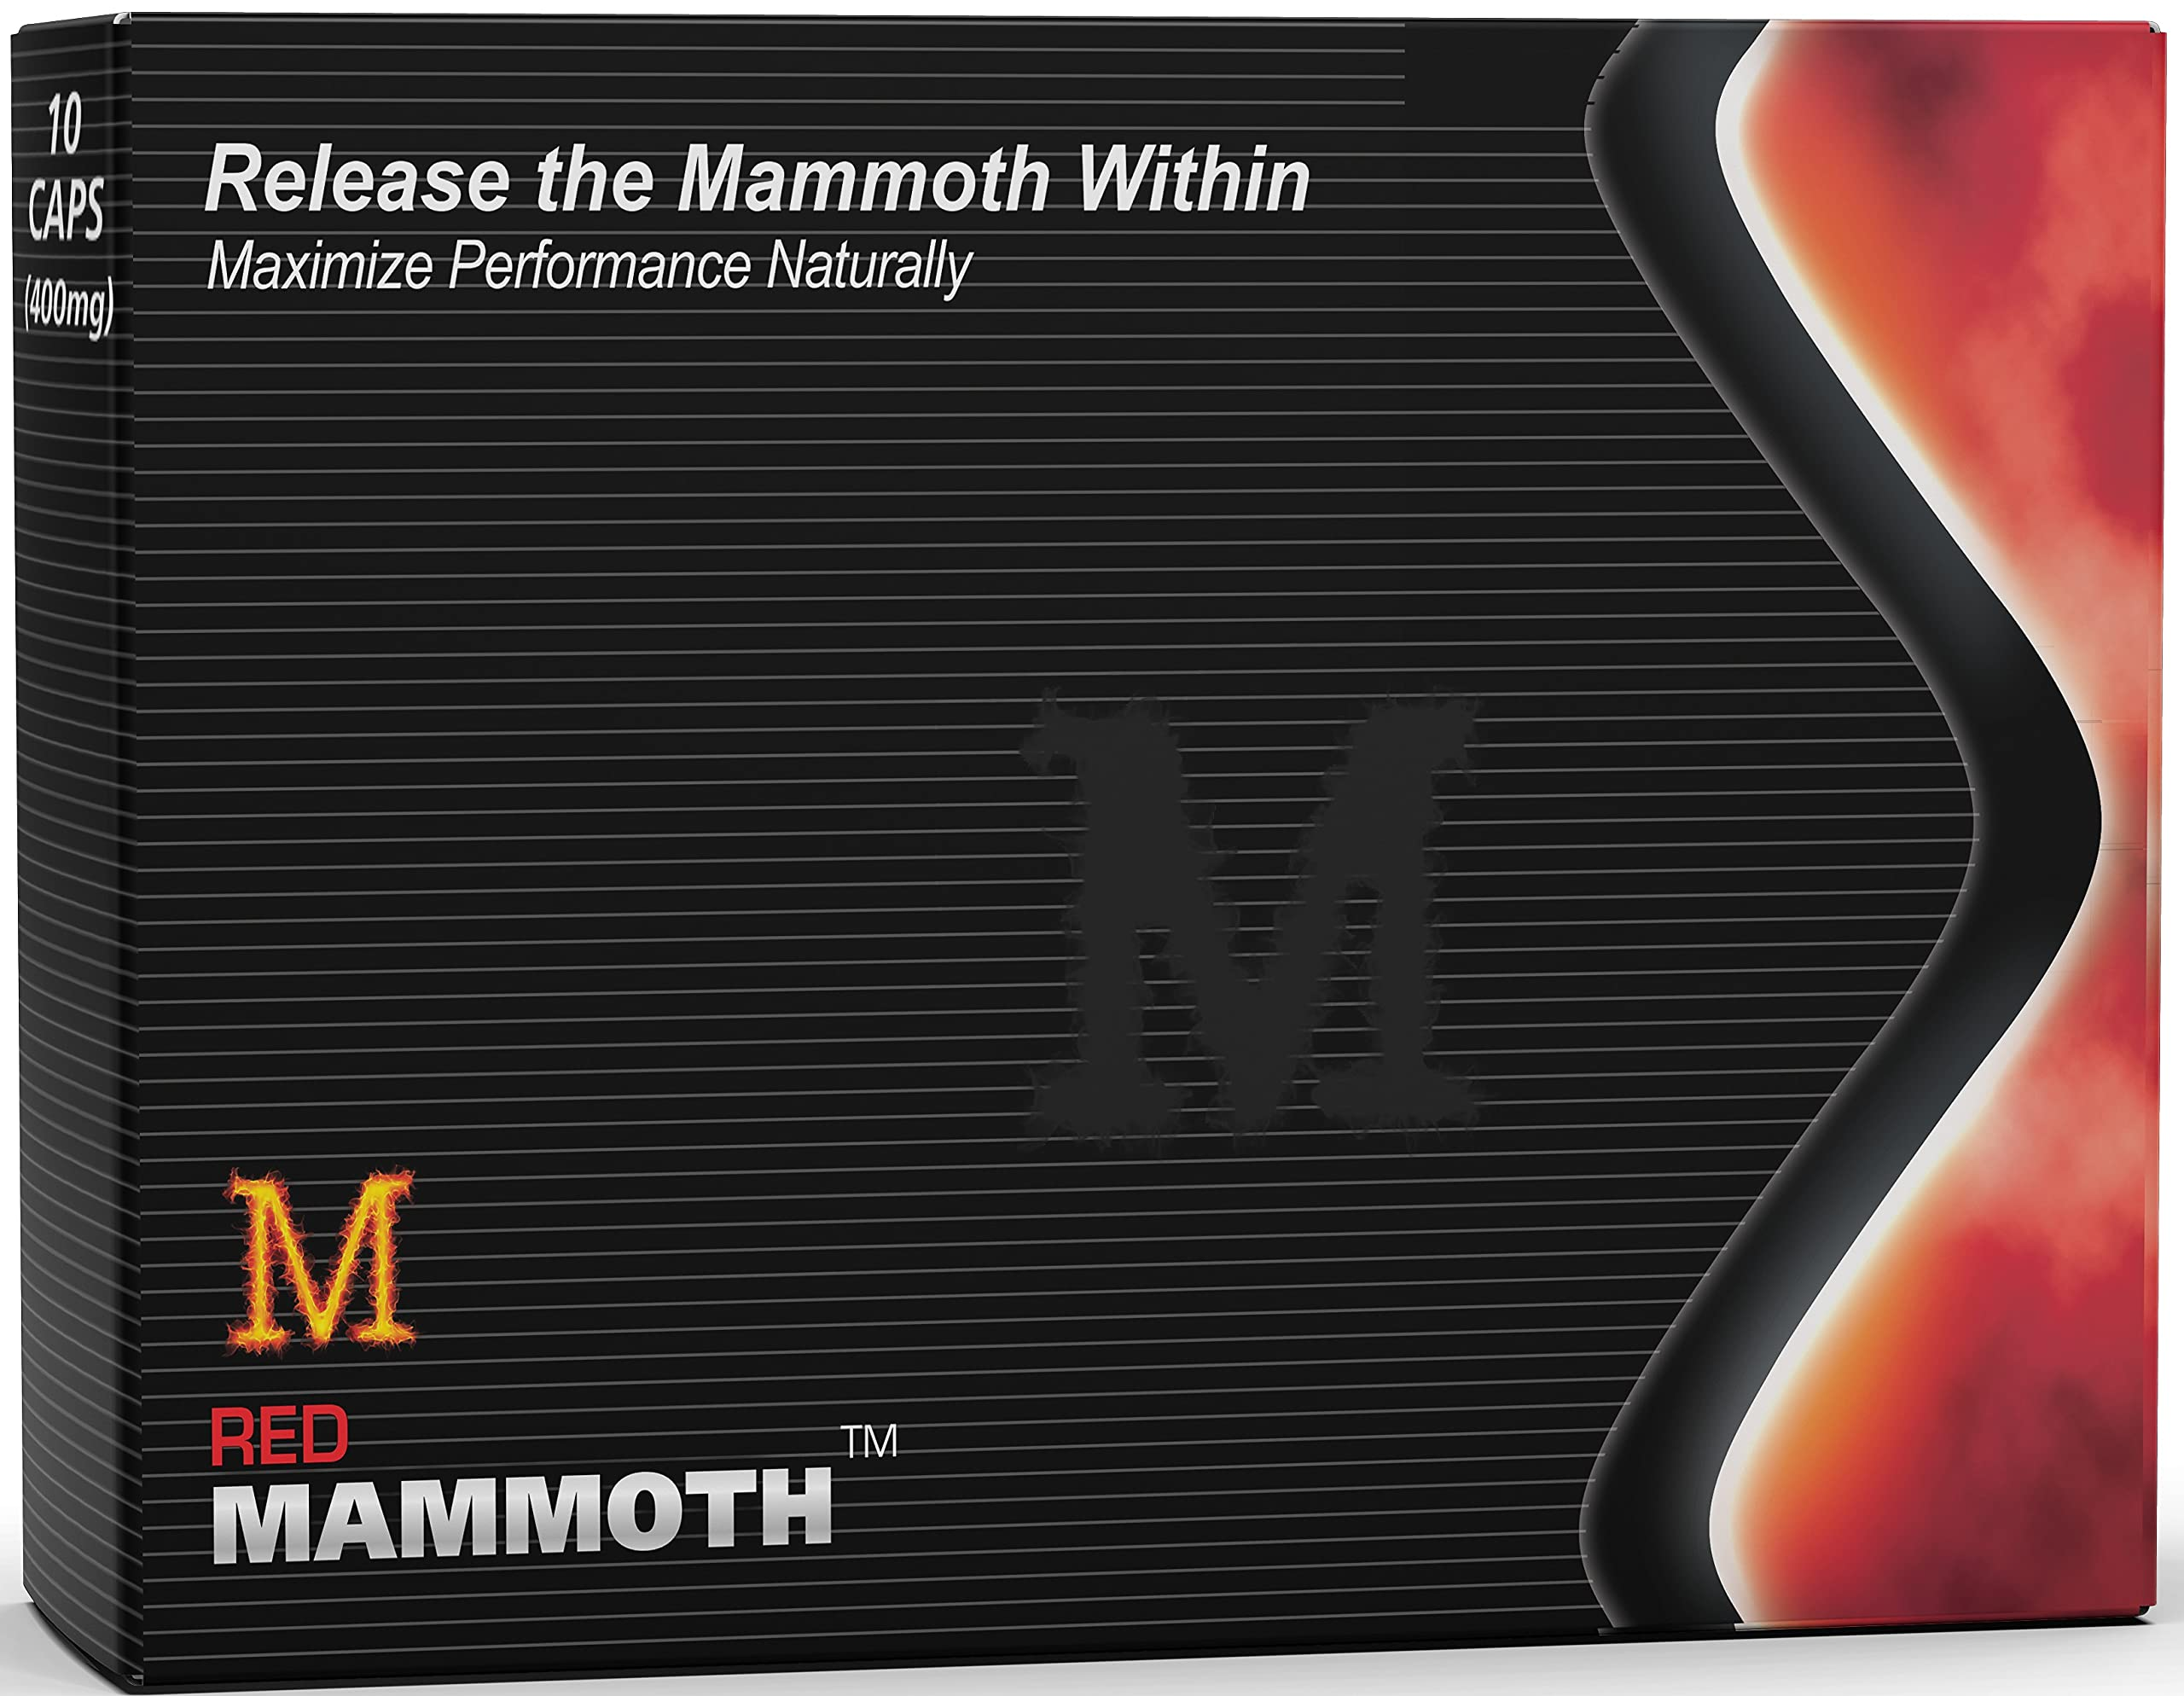 Red Mammoth (20 Caps) All Natural Energy & Strength Supplement